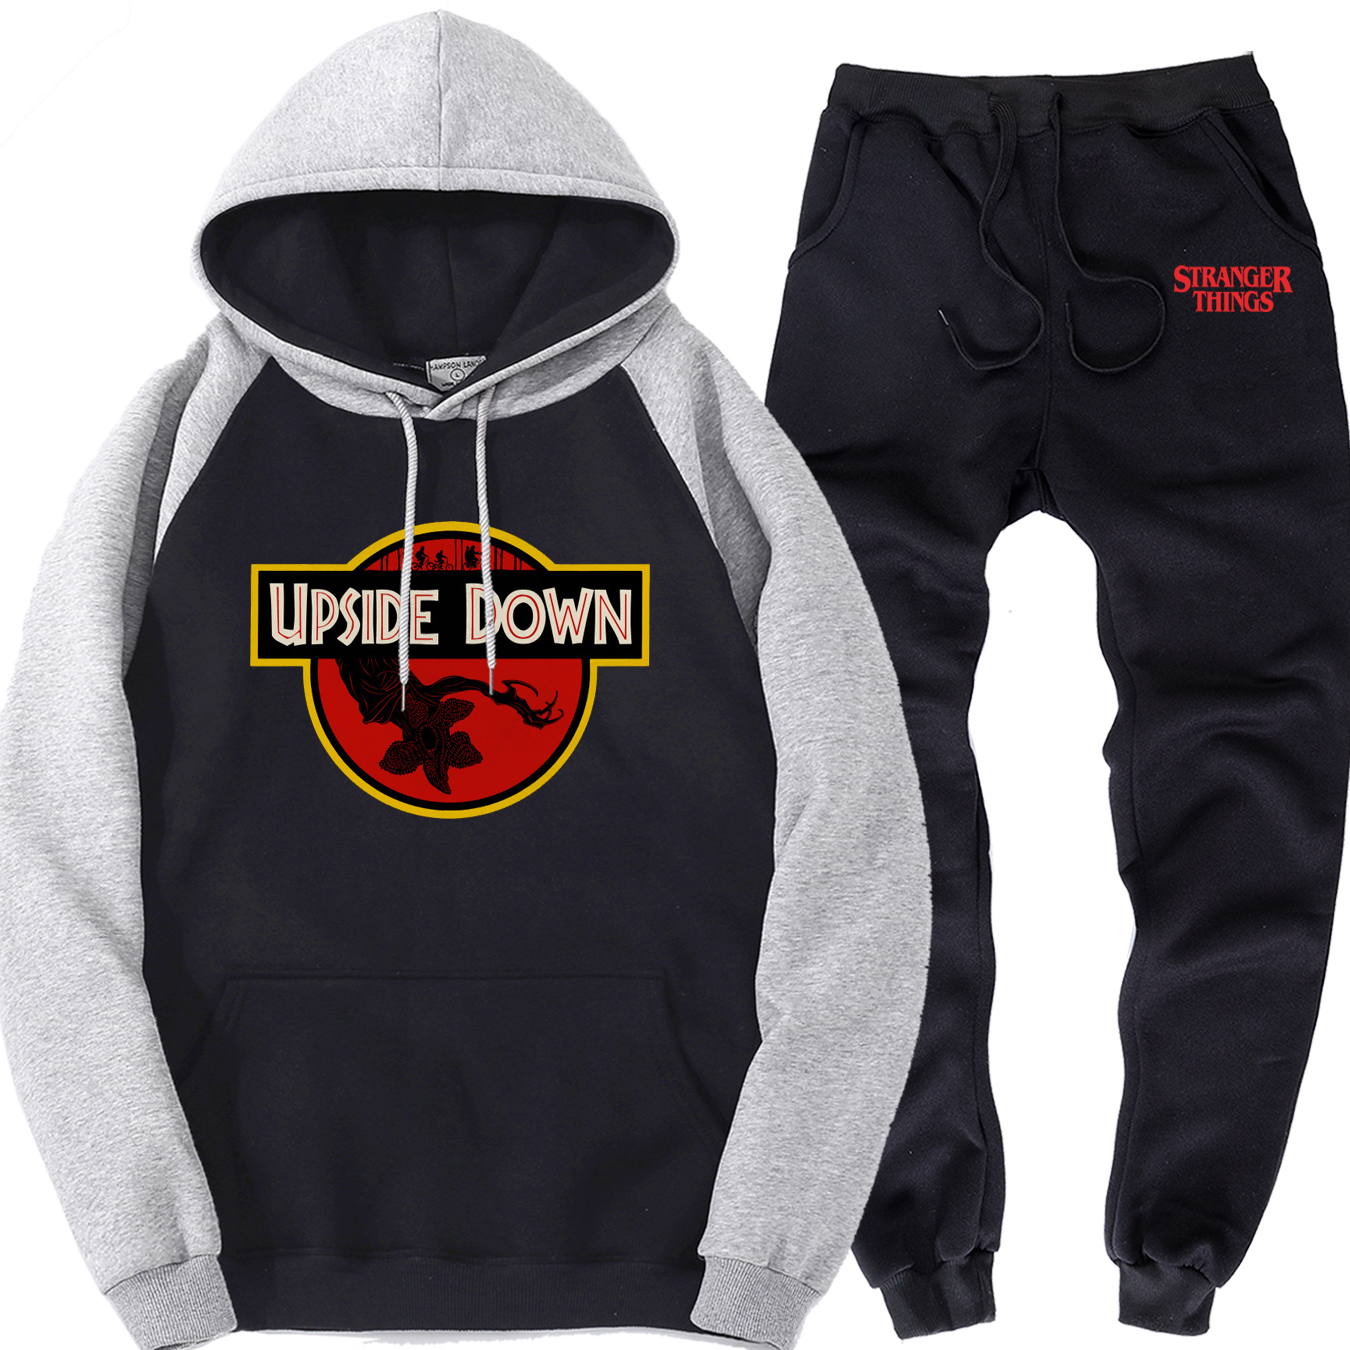 Stranger Things Mens Clothing Suit Upside Down Male Raglan Pullover Sports Pants Casual Brand Men Hipster Tracksuit Fleece Hoody